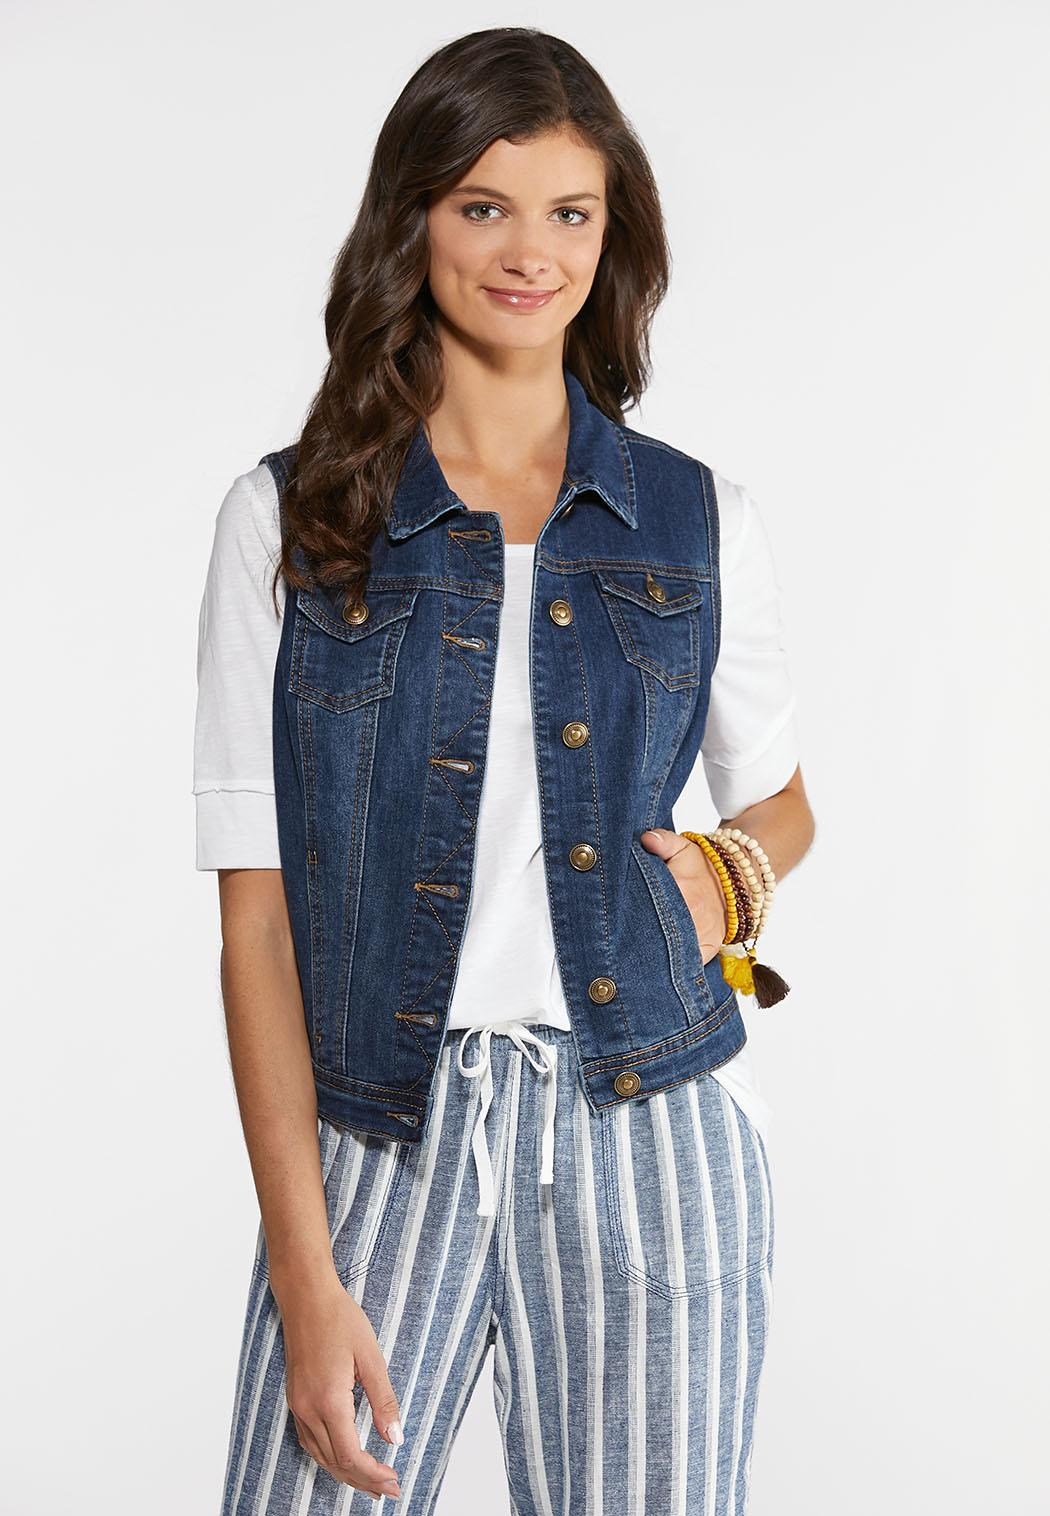 f8b31ff55d Jeans For Women - Denim, Jackets, Skirts & Vests